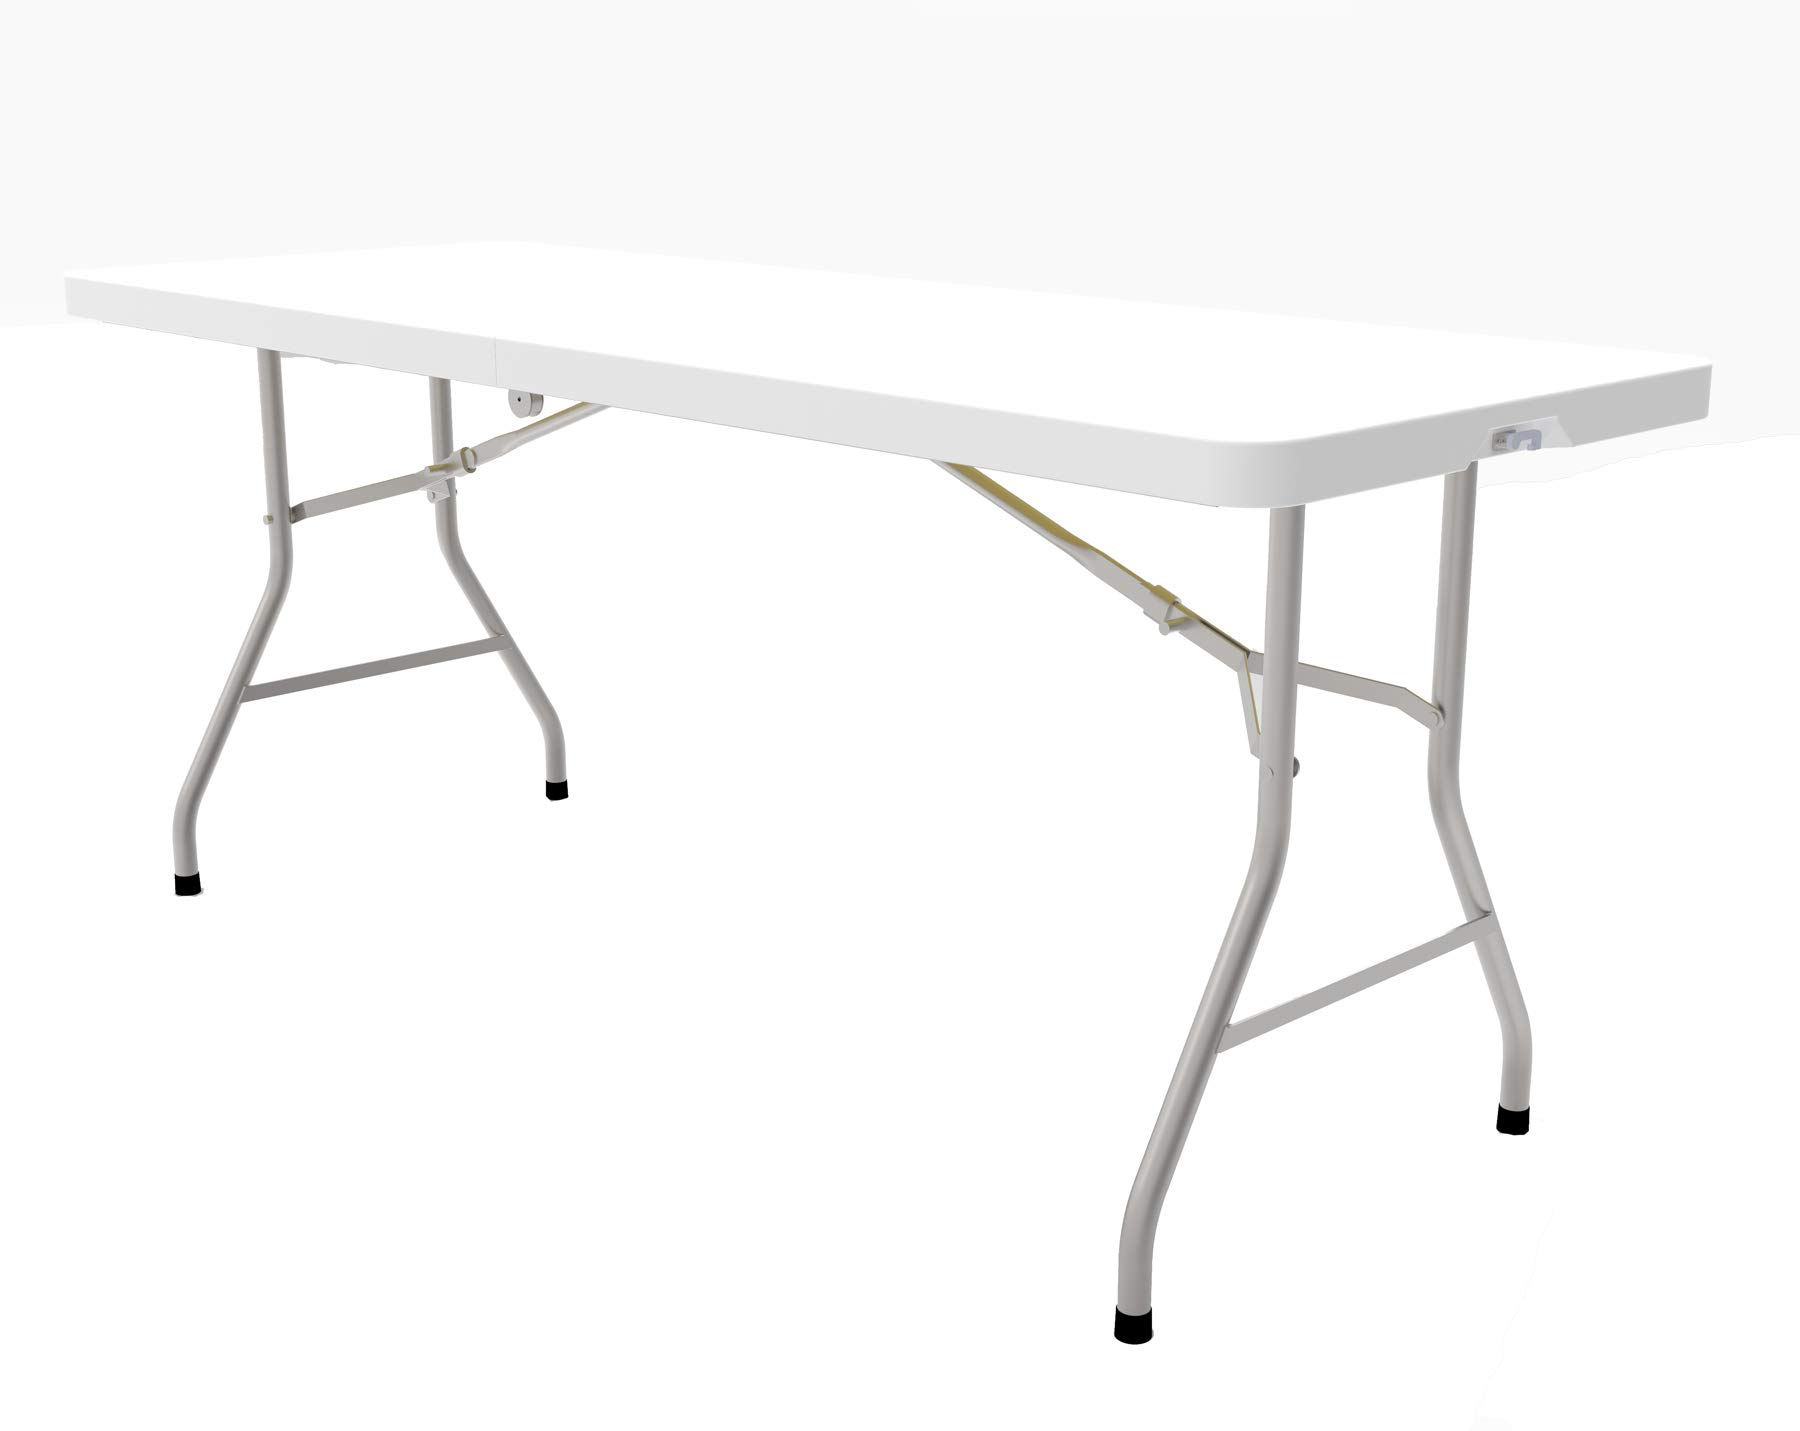 8 Foot Plastic Folding Table - Folds in Half with Carrying Handle - Rectangular - Lightweight and Portable - White Resin with Sturdy Steel Frame - 30''x 96'' - by Ontario Furniture by Ontario Furniture